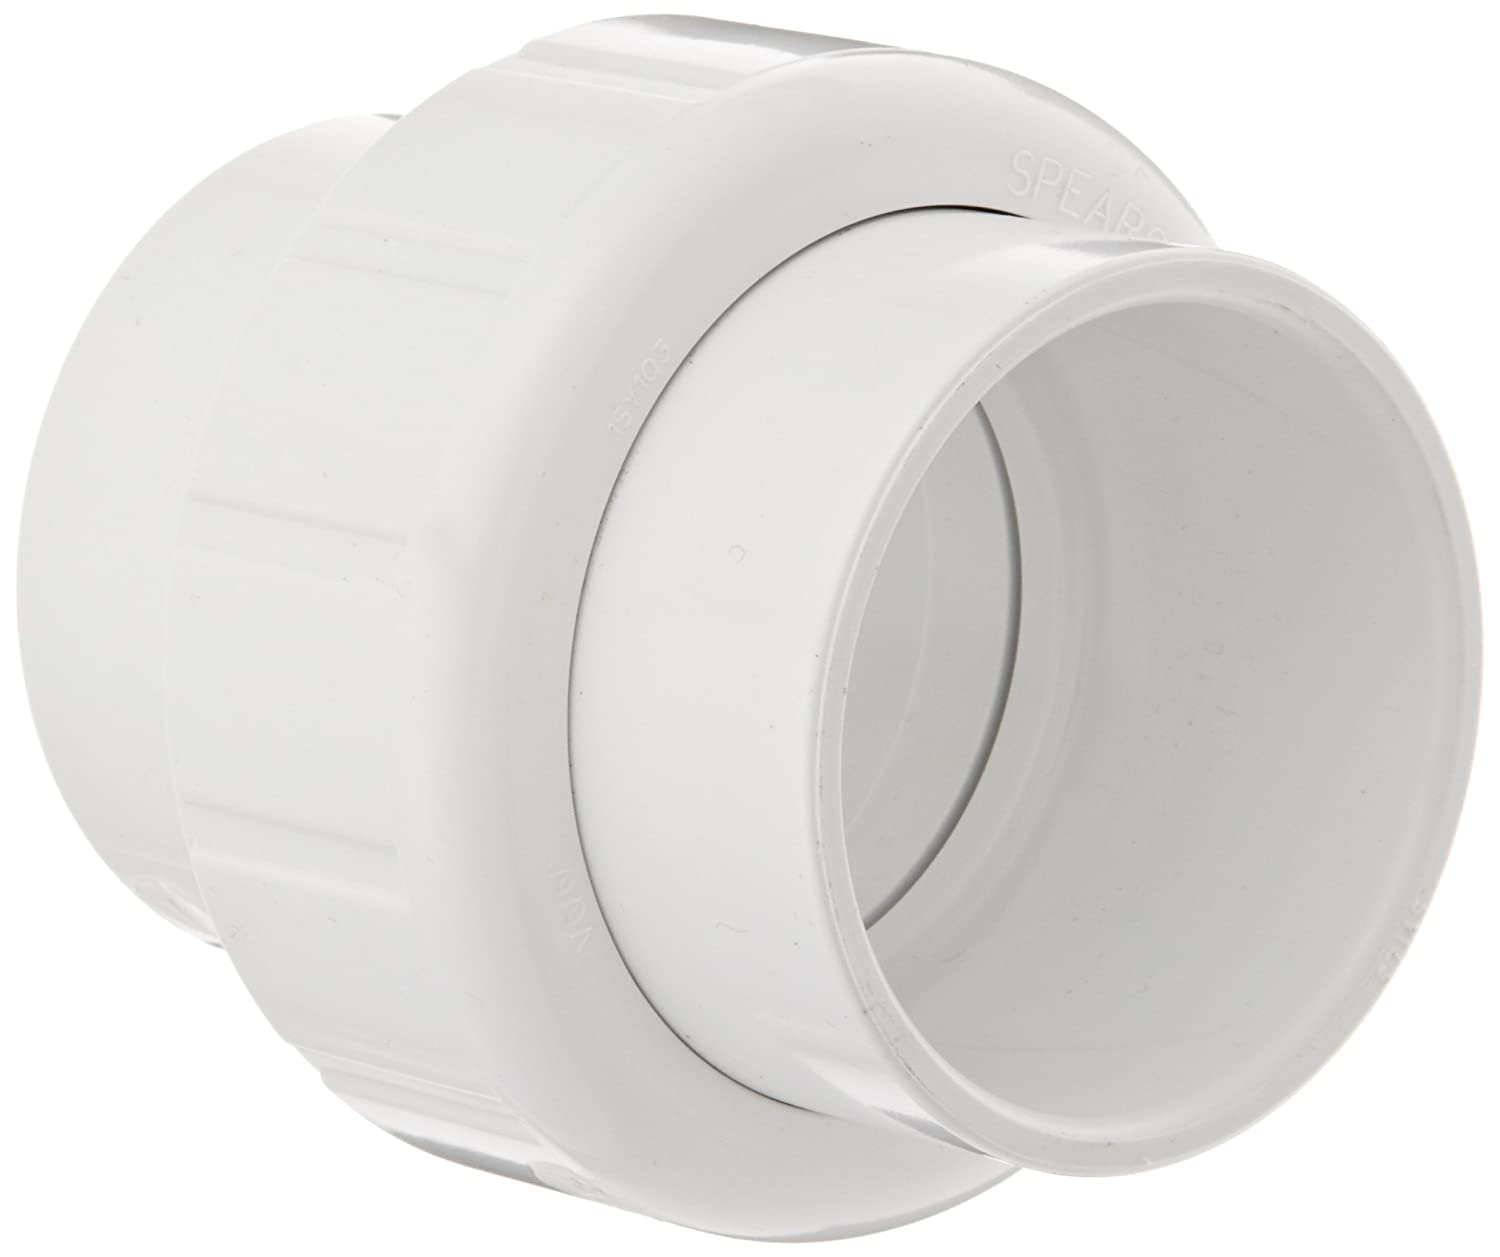 Spears 497 Series PVC Pipe Fitting EPDM Max 60% OFF Manufacturer direct delivery O-Ring Sche with Union